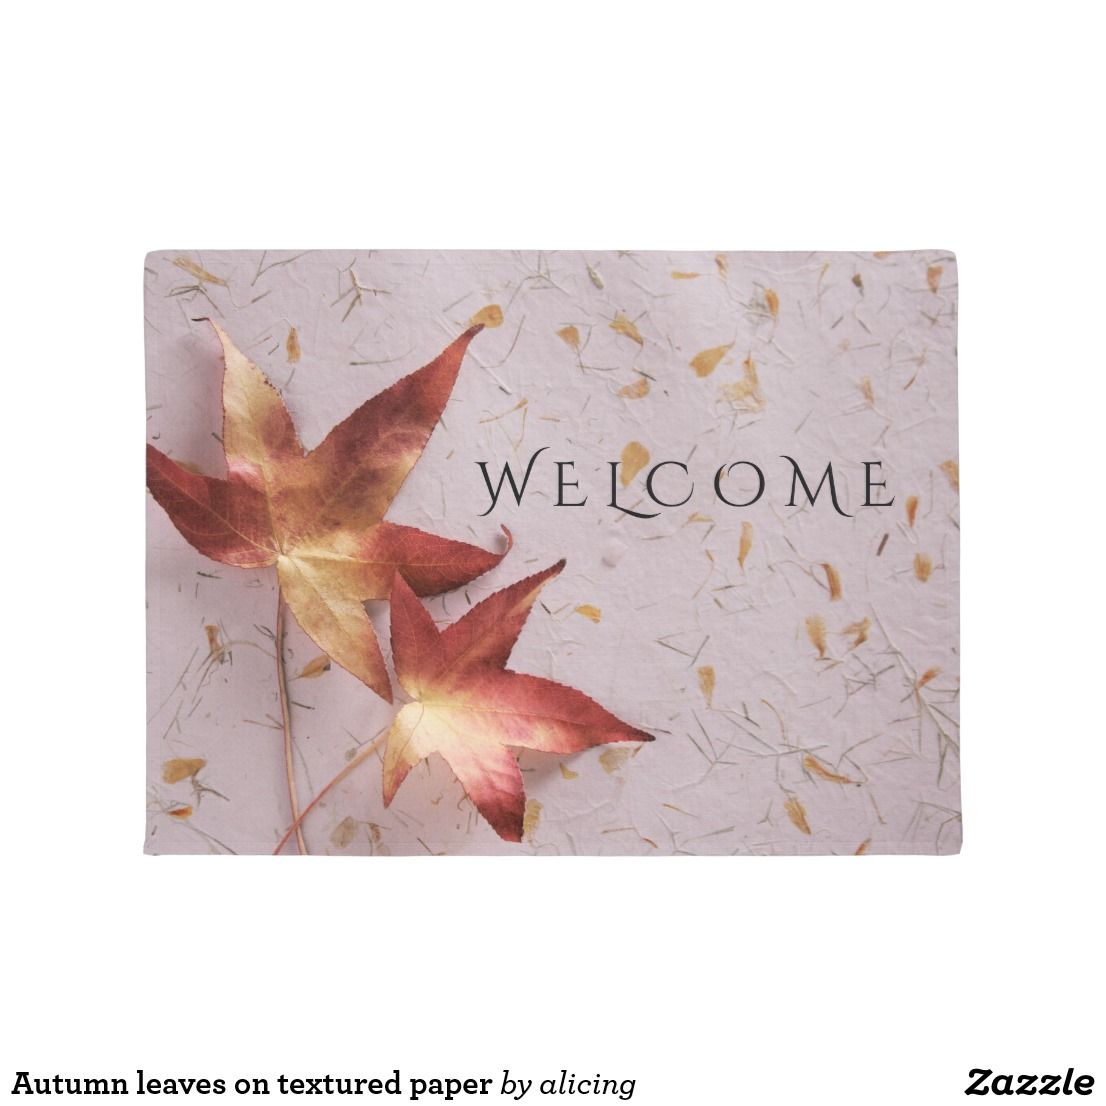 Autumn leaves on textured paper doormat house autumn leaves on textured paper doormat kristyandbryce Images